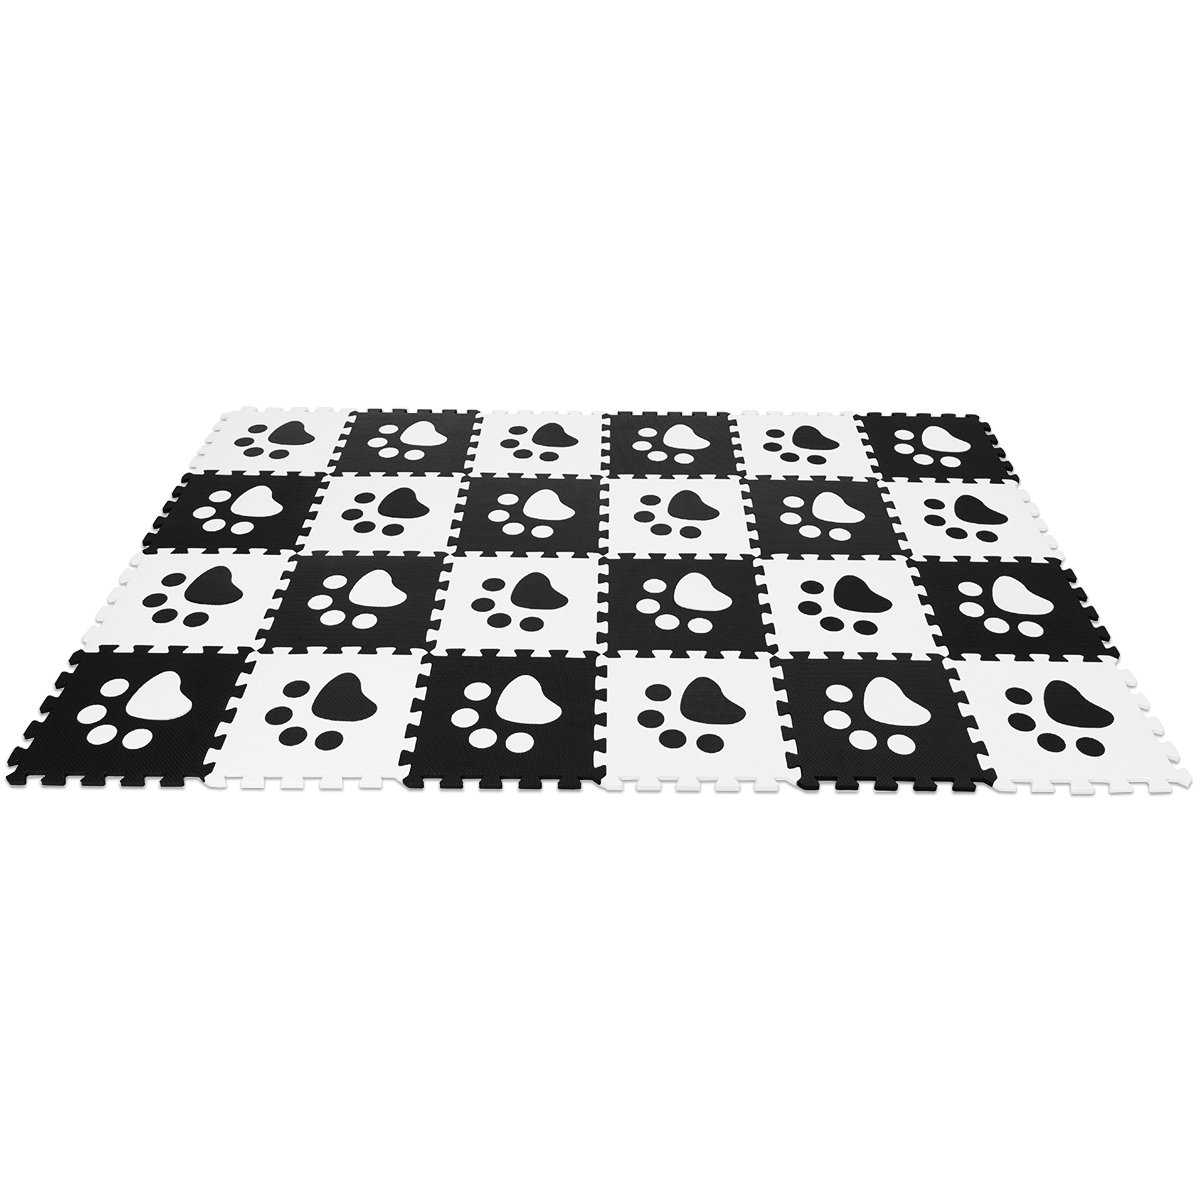 Costzon Puzzle Exercise Mat with EVA Foam Interlocking Tiles EVA Mats Also Fit to Use at Home or Other Ways Needed for Protecting